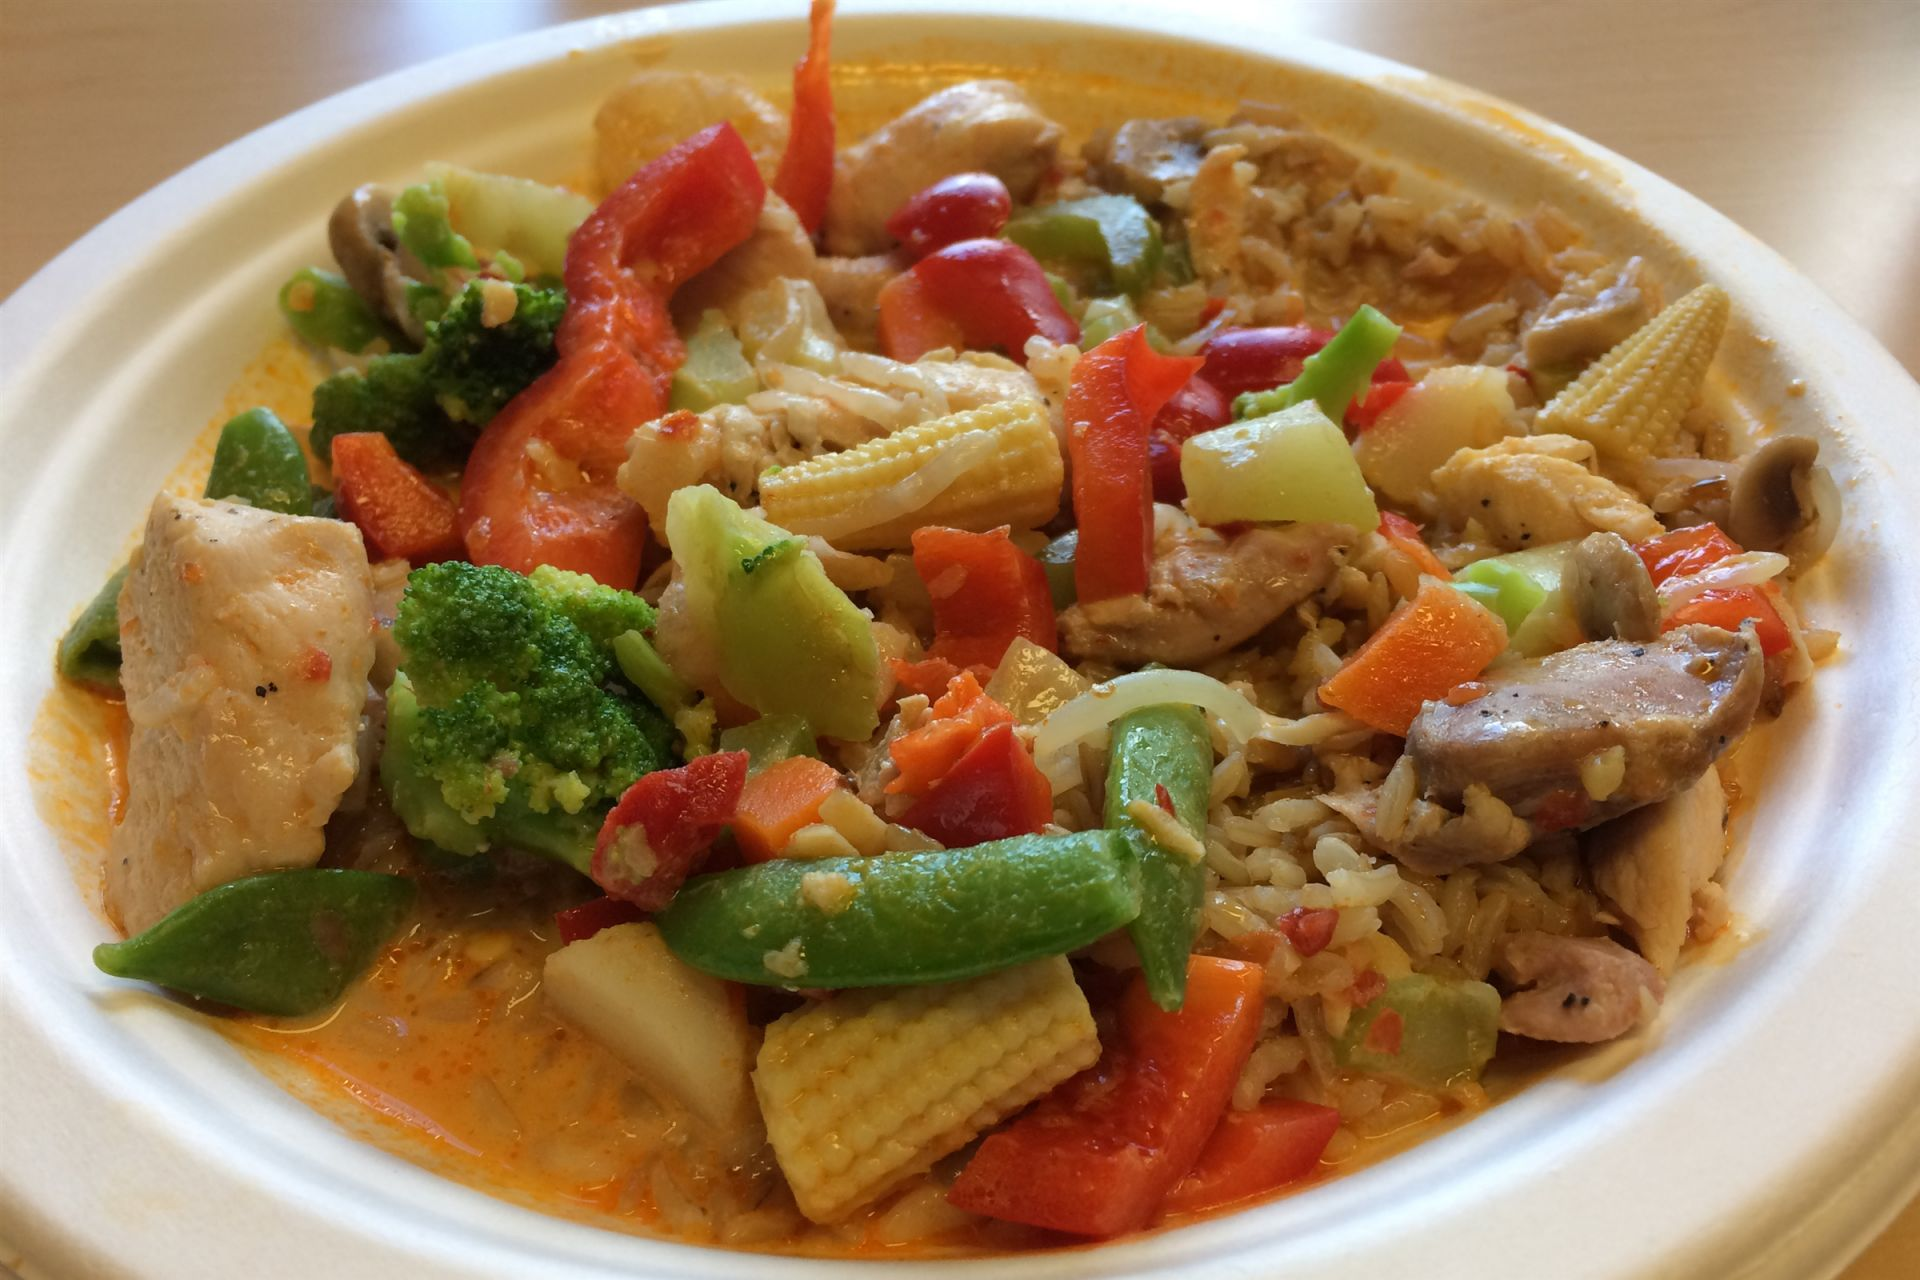 Thai chicken and vegetable curry with brown rice.